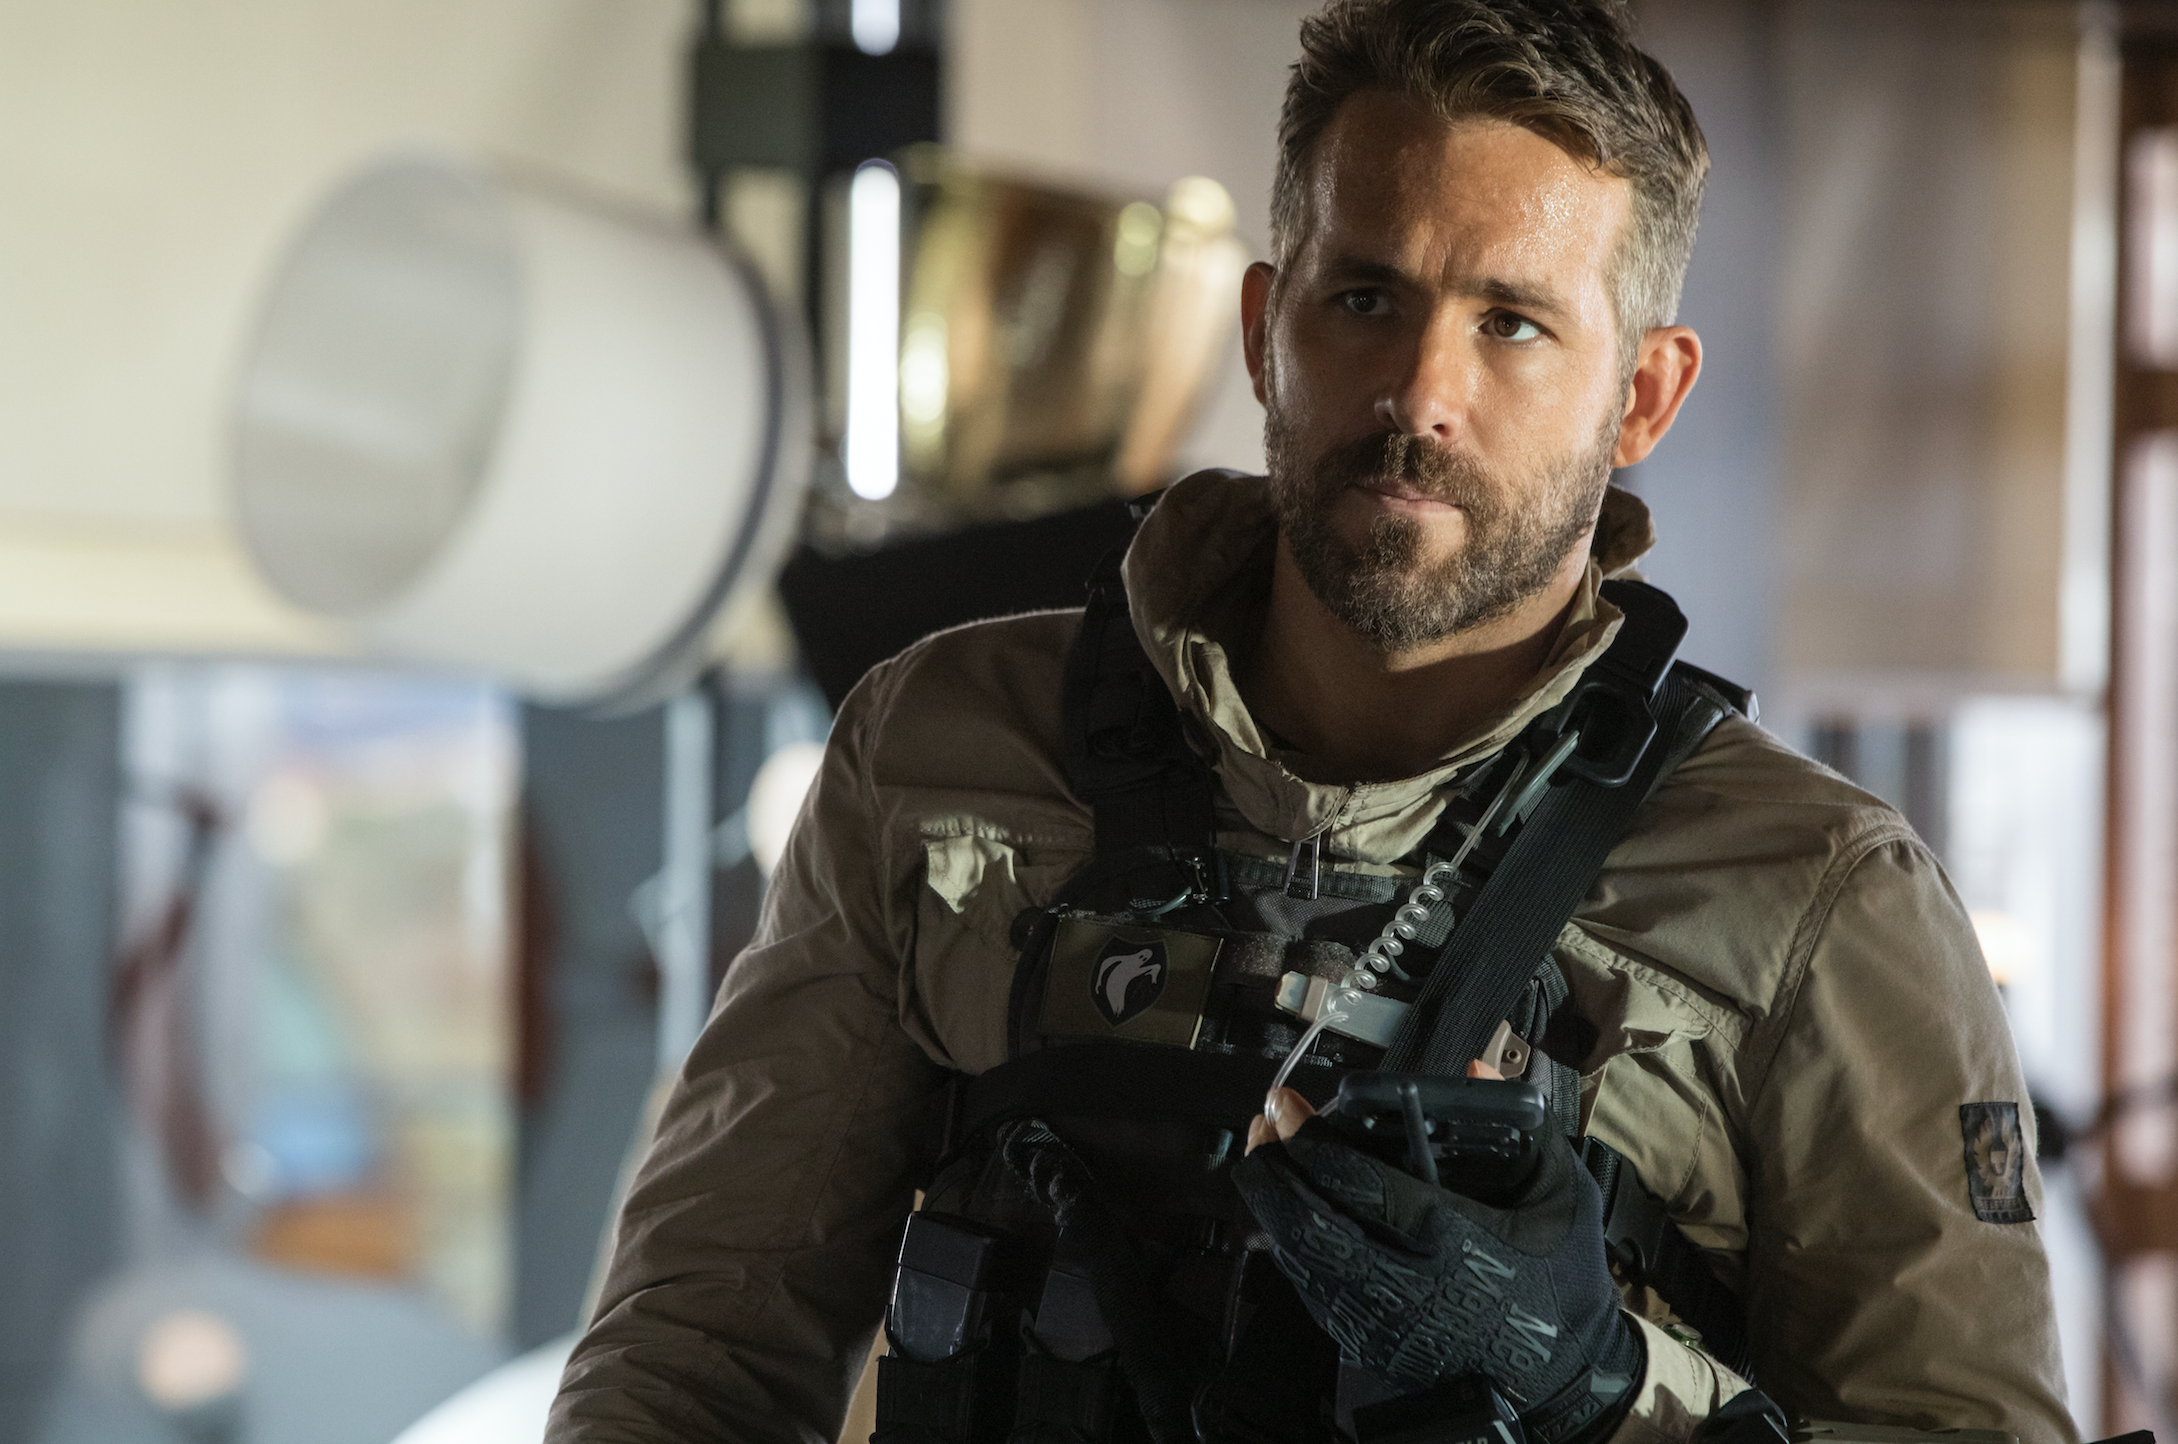 I Tapped Out of Netflix's New Ryan Reynolds Movie, '6 Underground,' in Approximately 17 Minutes